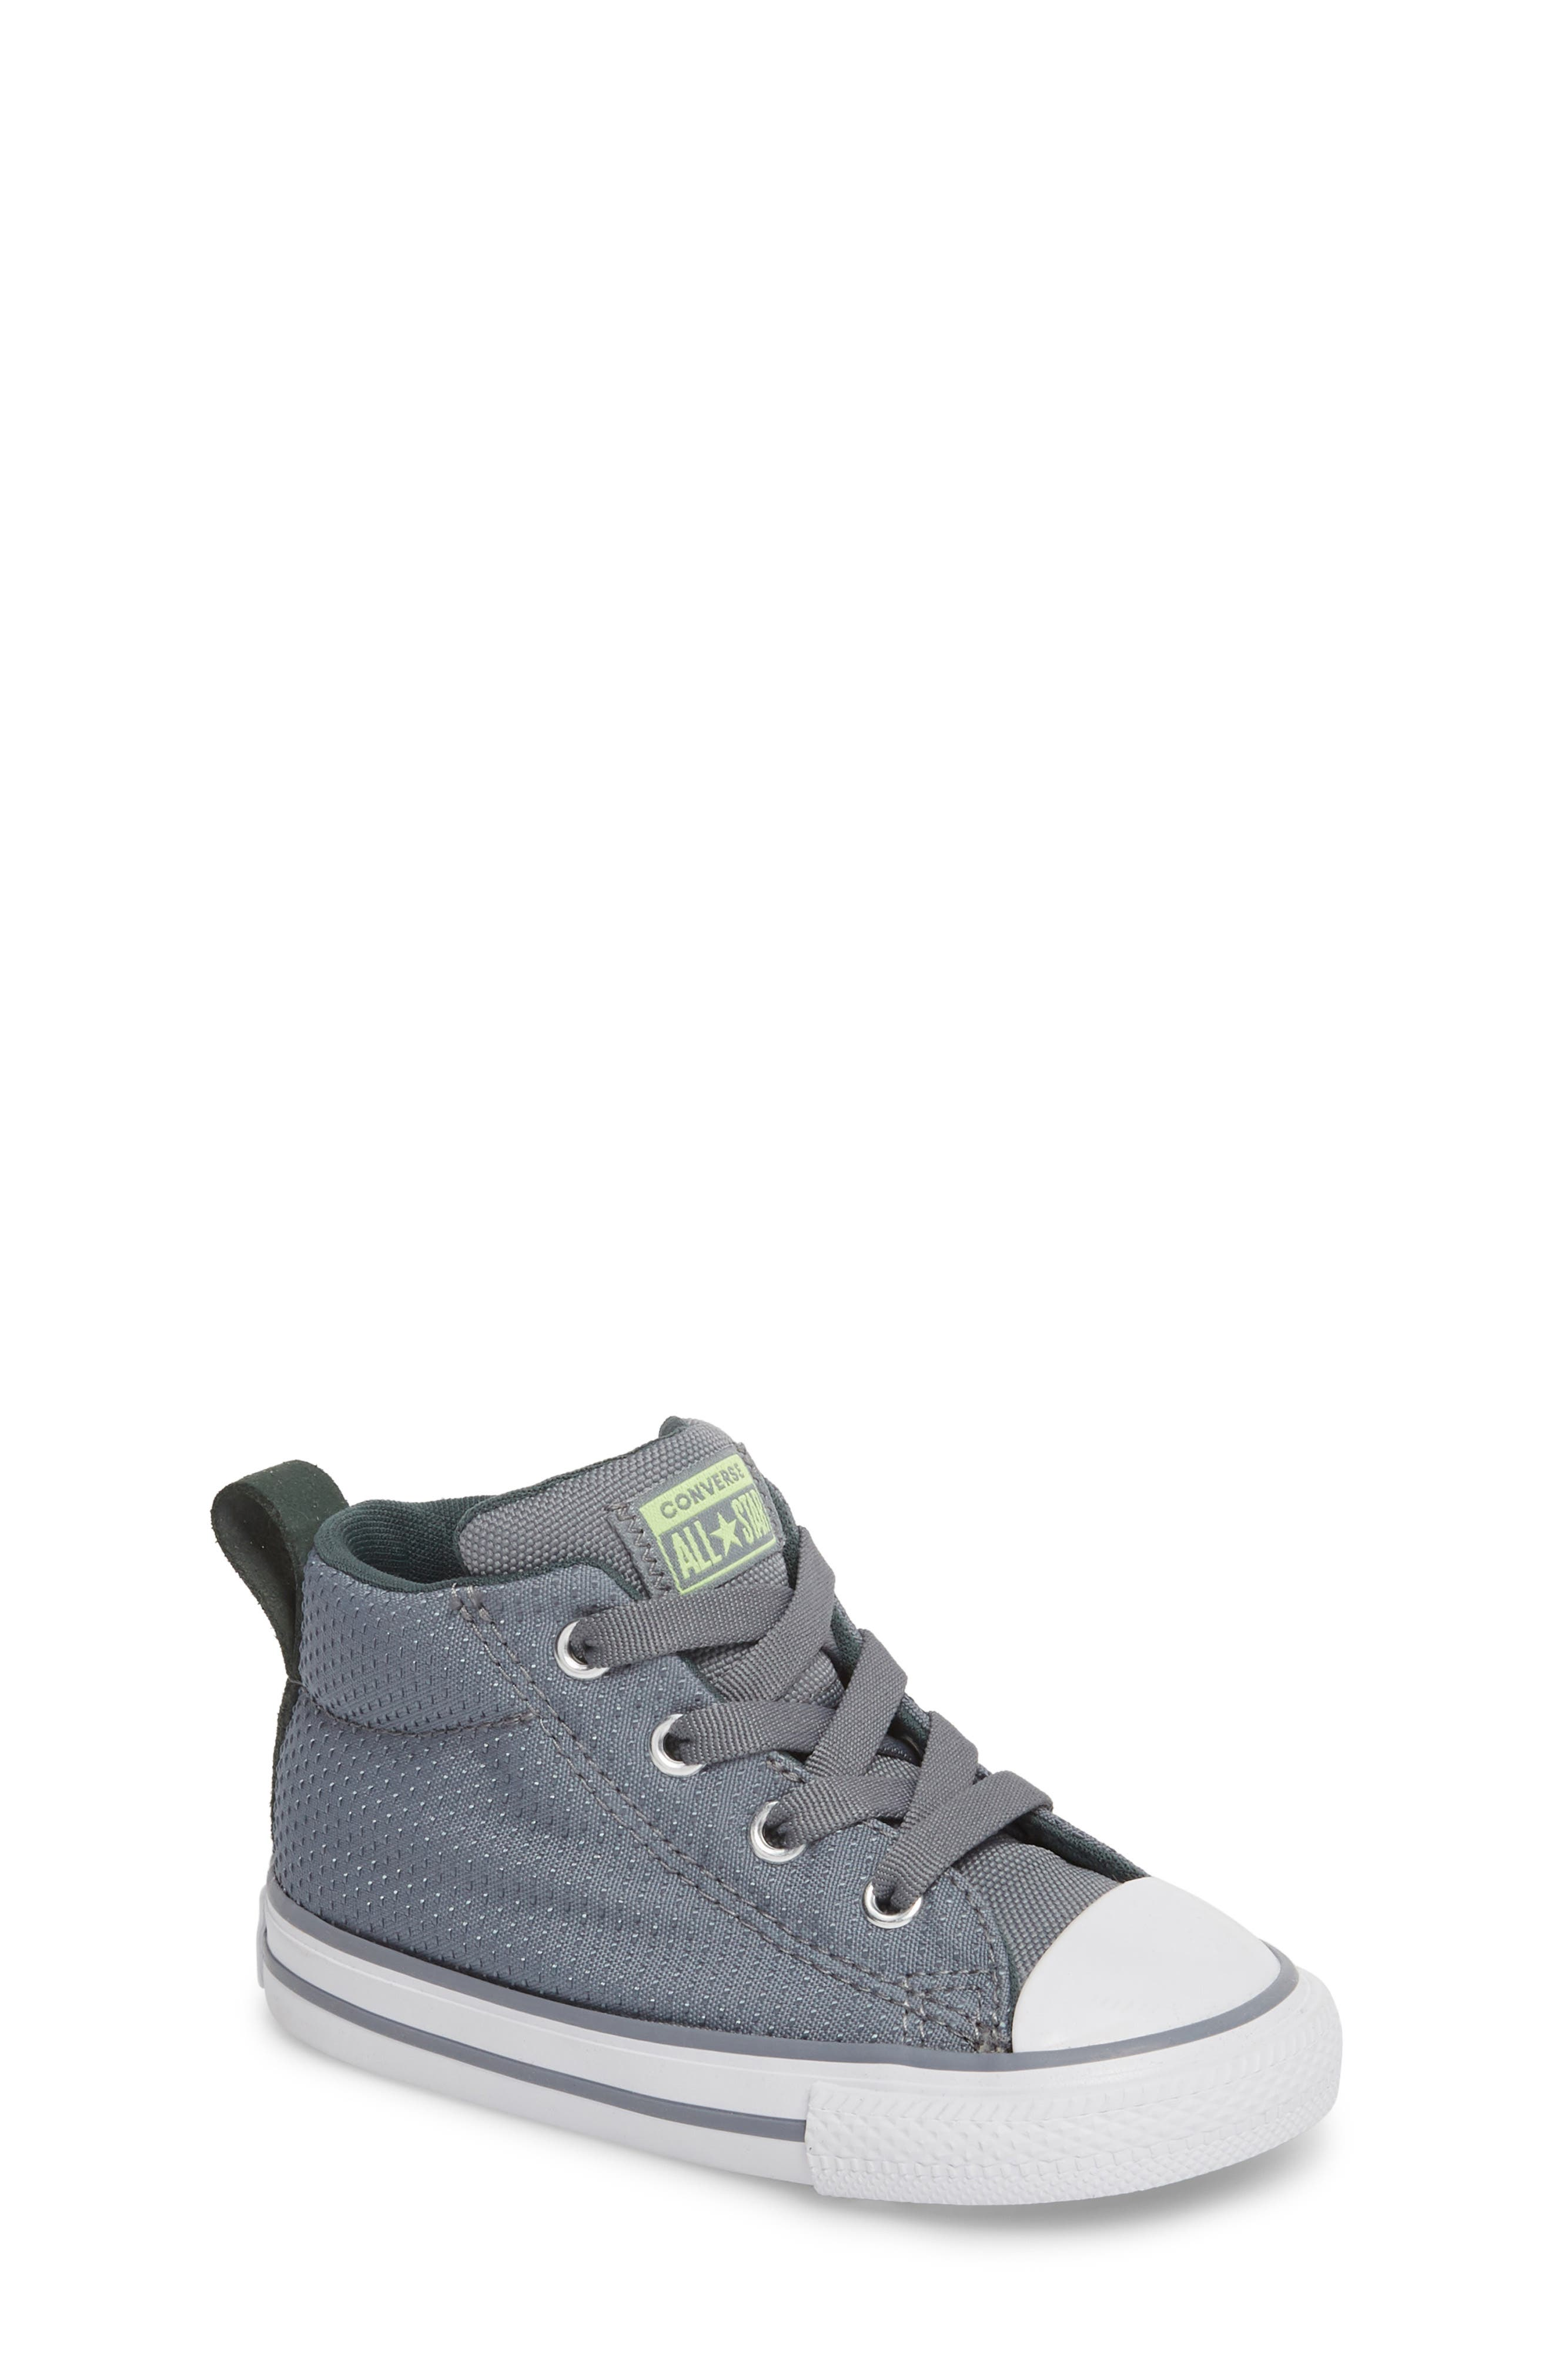 Chuck Taylor<sup>®</sup> All Star<sup>®</sup> Street Mid Top Sneaker,                         Main,                         color, Pale Grey